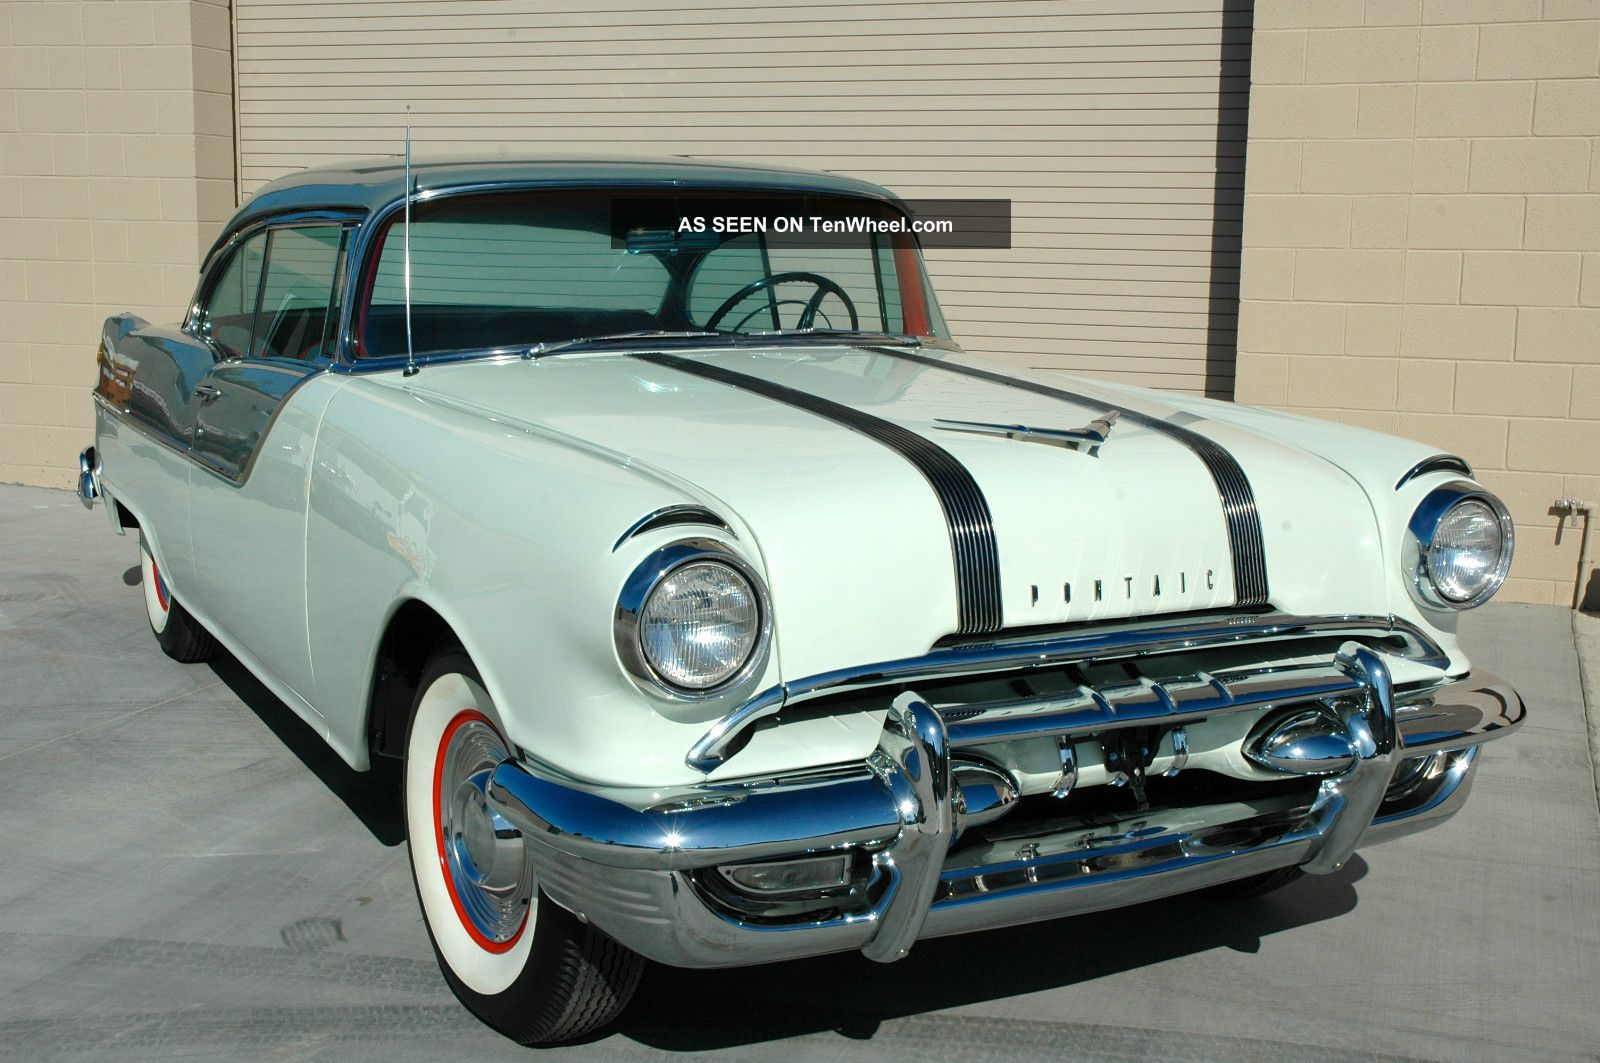 1955 pontiac chieftain 870 information and photos. Black Bedroom Furniture Sets. Home Design Ideas